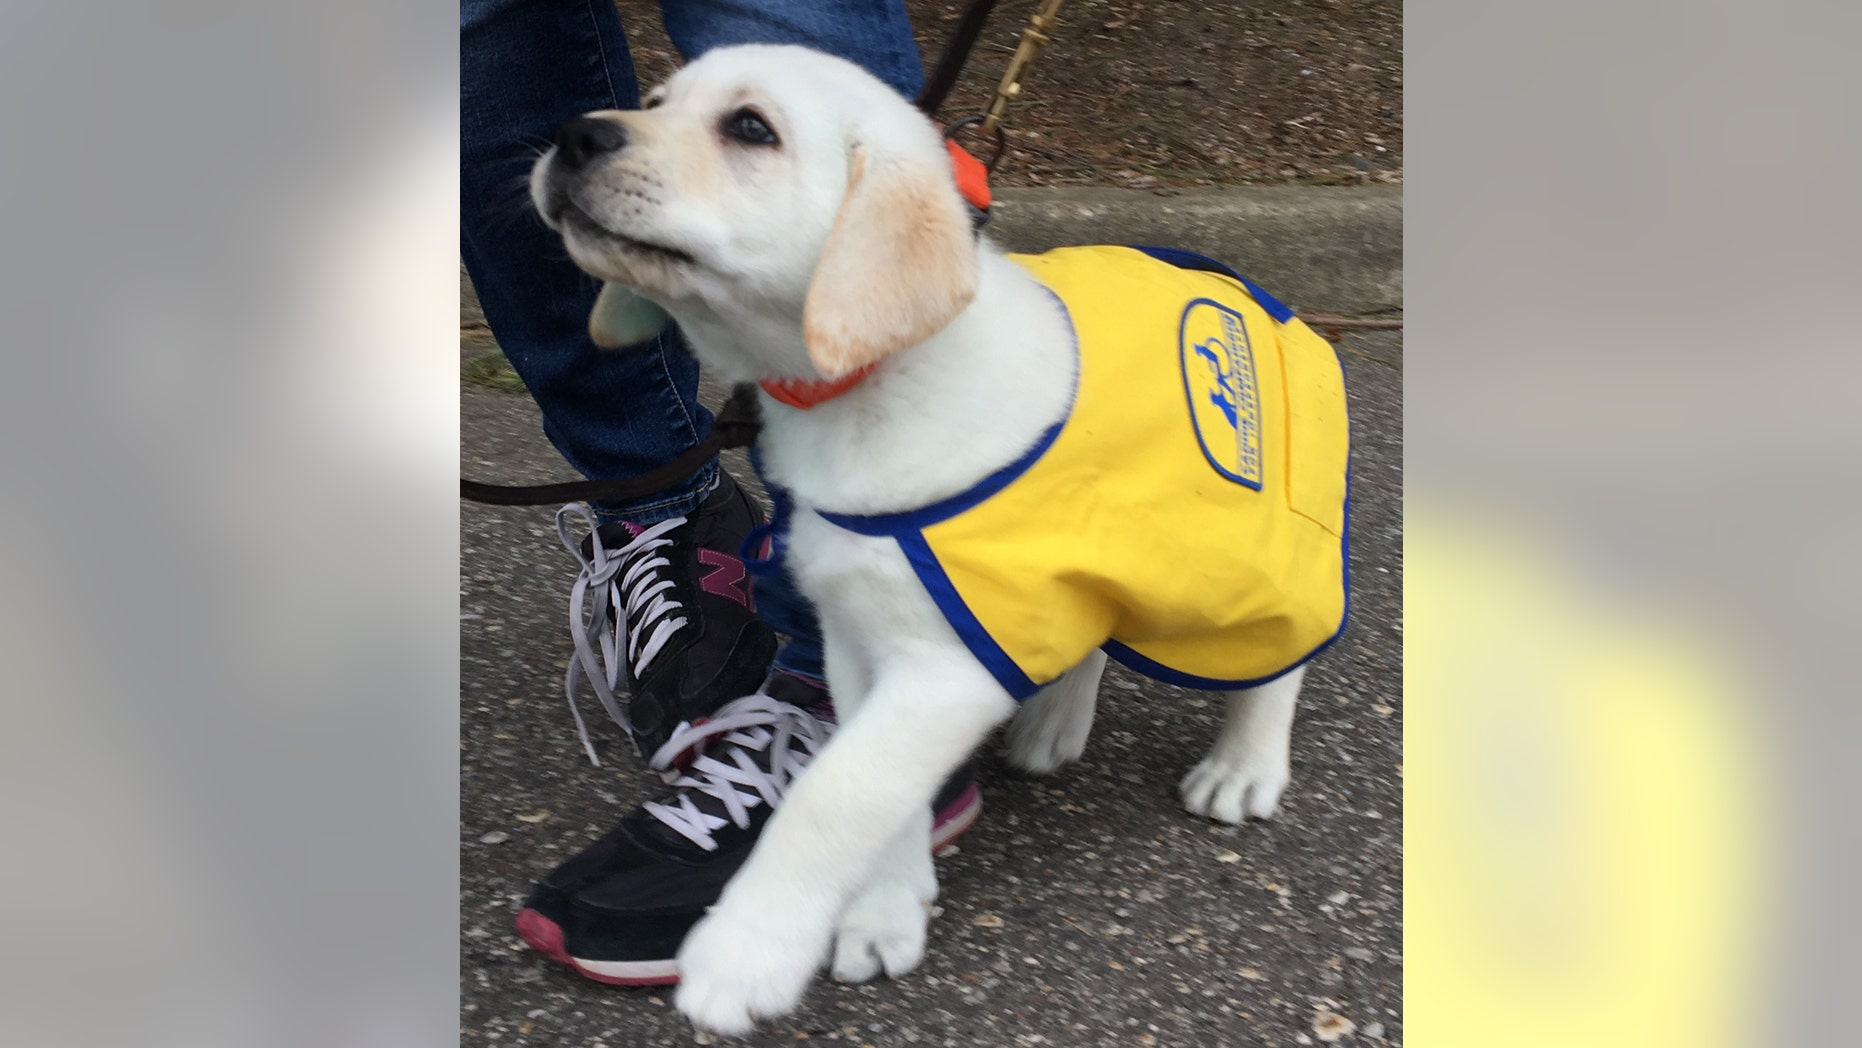 Spike, who Williams is raising in honor of her late brother Kyle, is being trained to aid persons with disabilities.